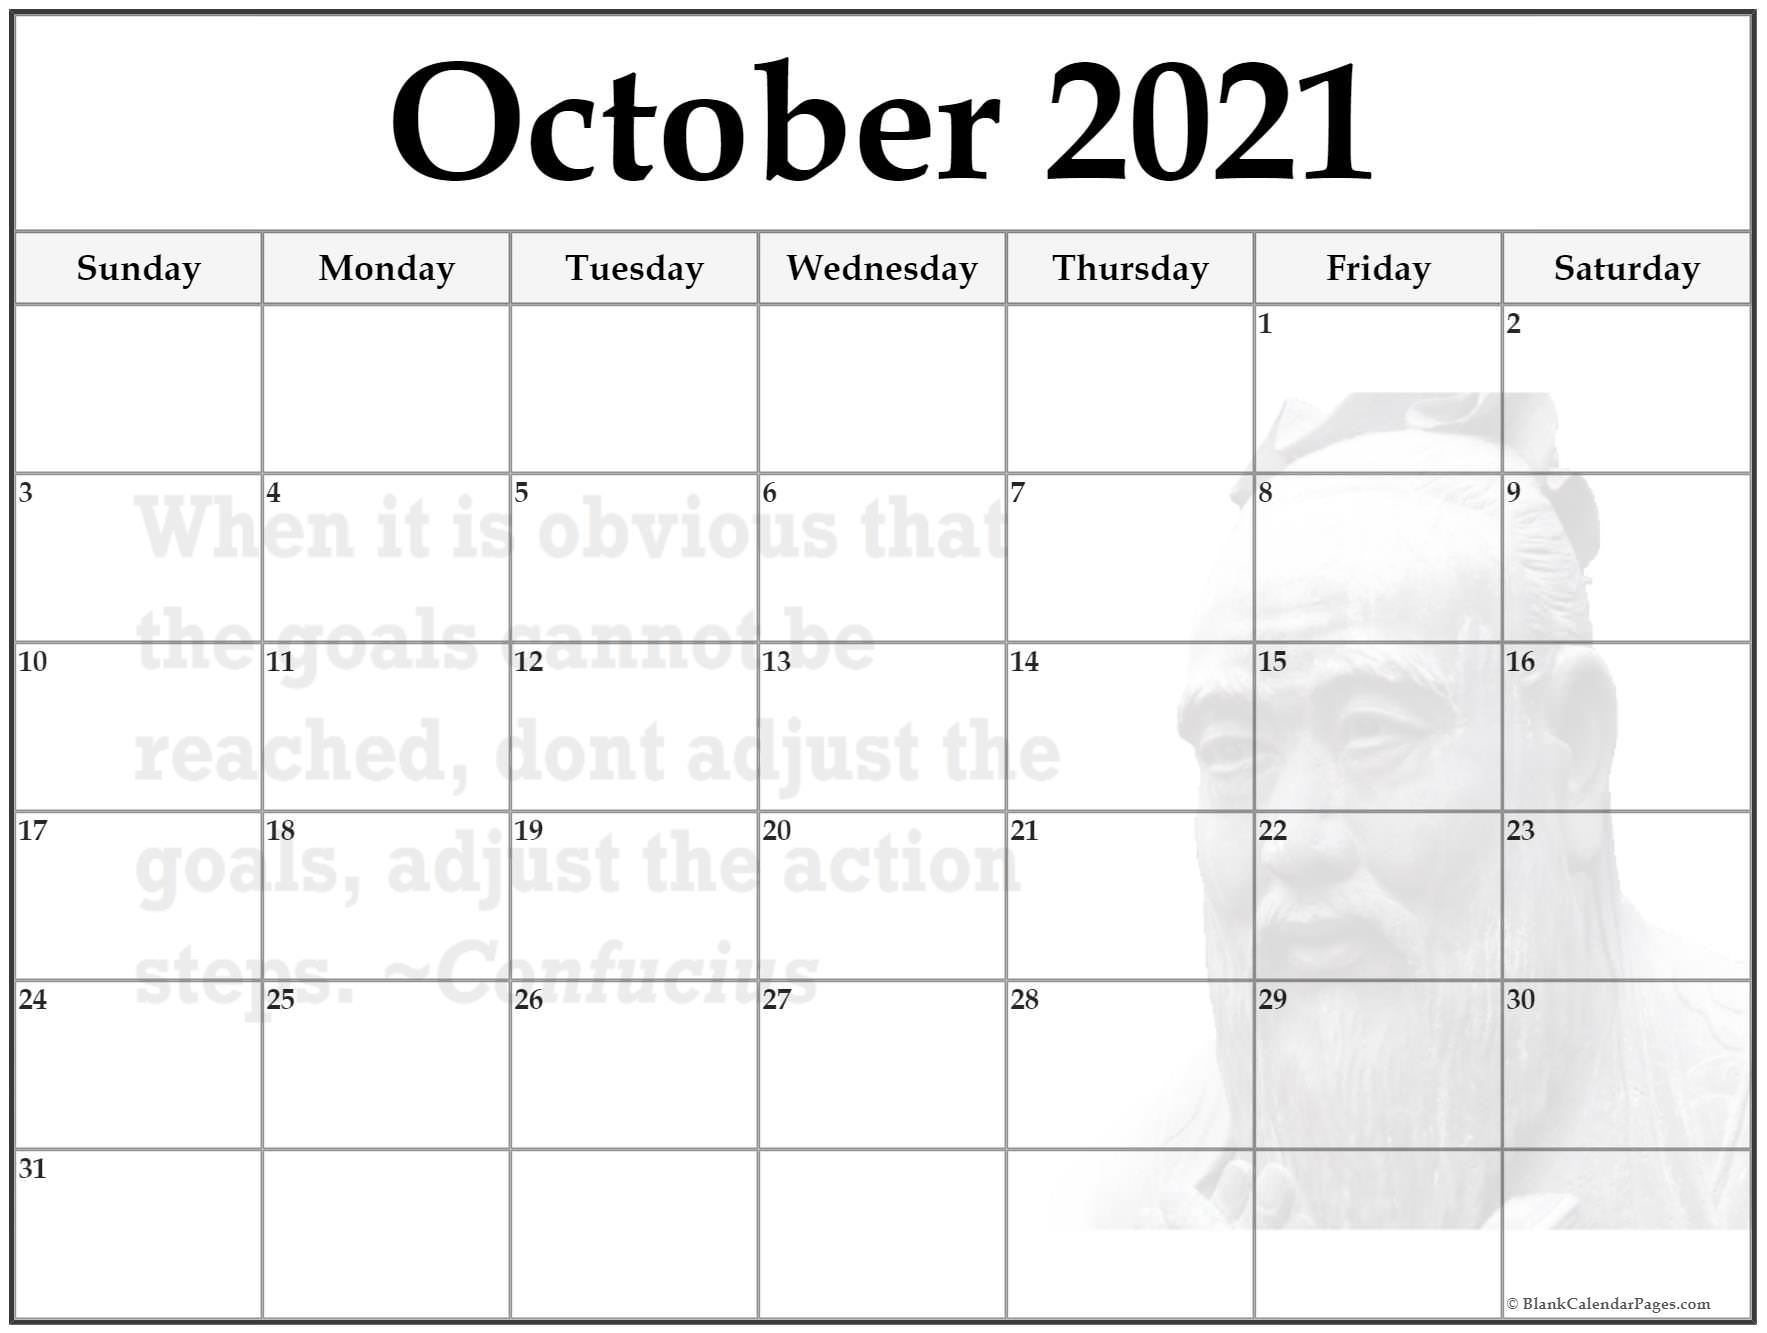 October 2021 monthly calendar template. When it is obvious that the goals cannot be reached, don't adjust the goals, adjust the action steps ~Confucius